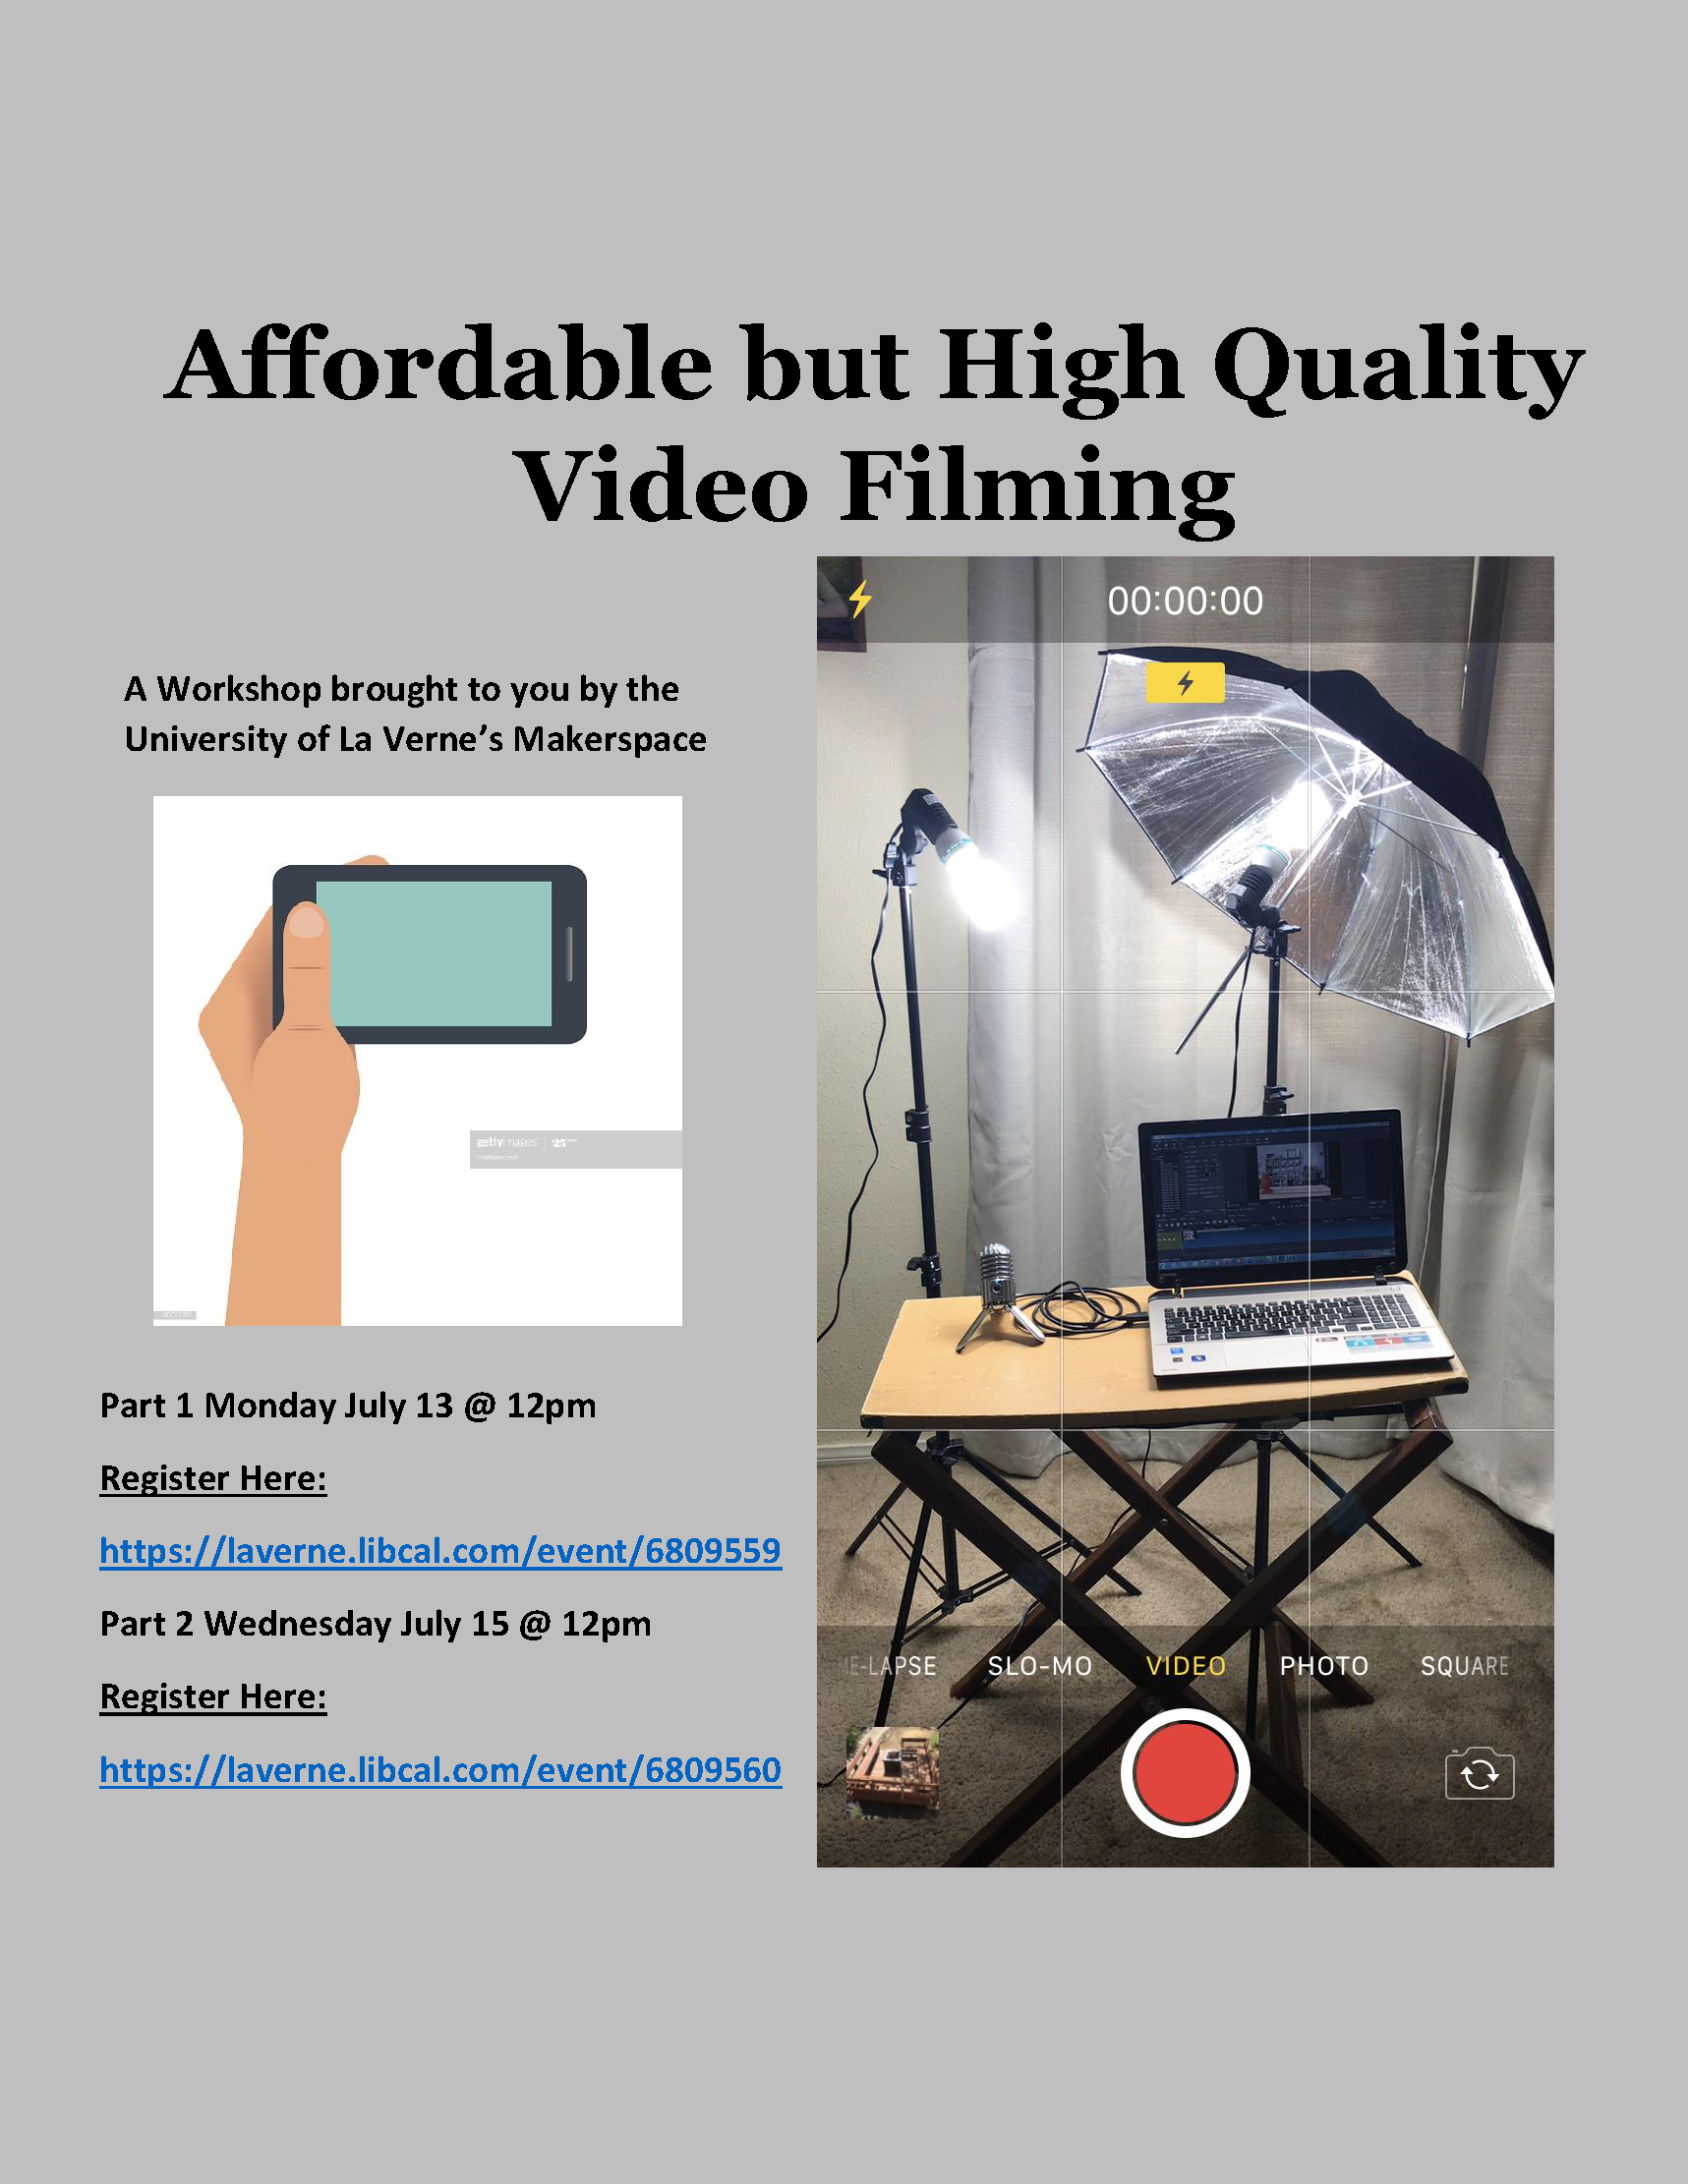 Affordable but High Quality Video Filming 2